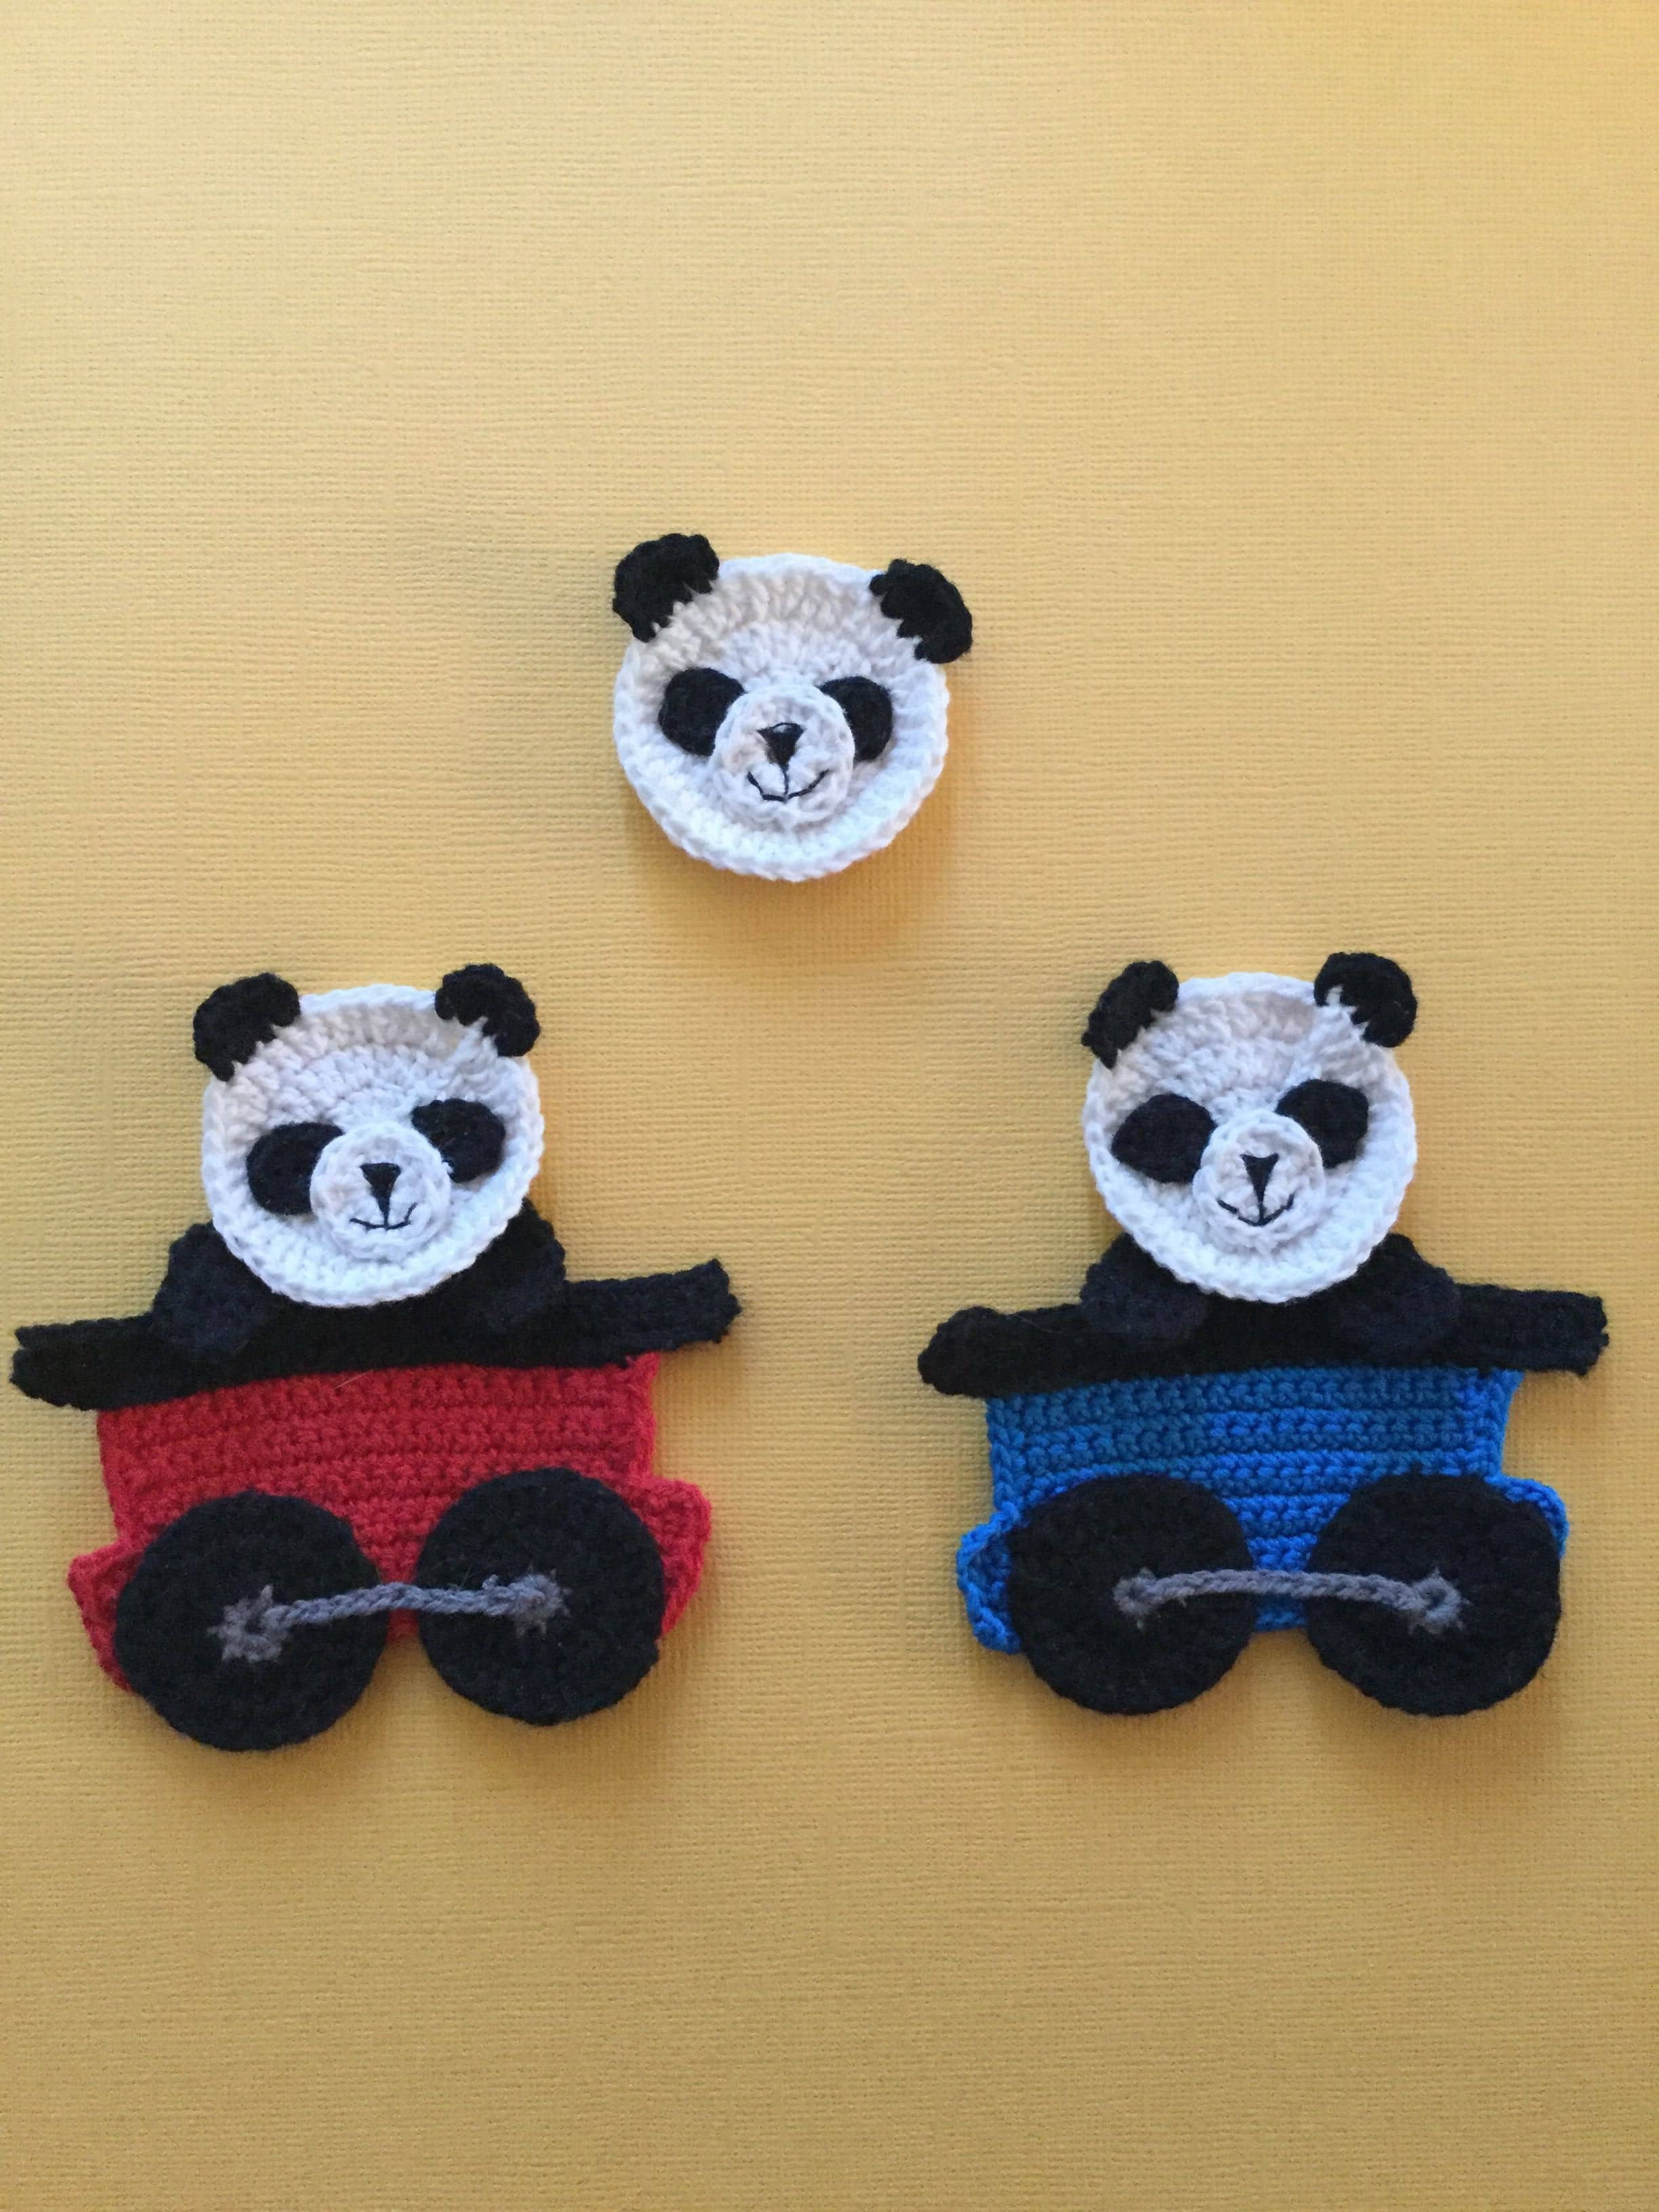 Luxury Finished Crochet Panda Group Portrait Yellow Background Crochet Group Of Amazing 46 Pictures Crochet Group